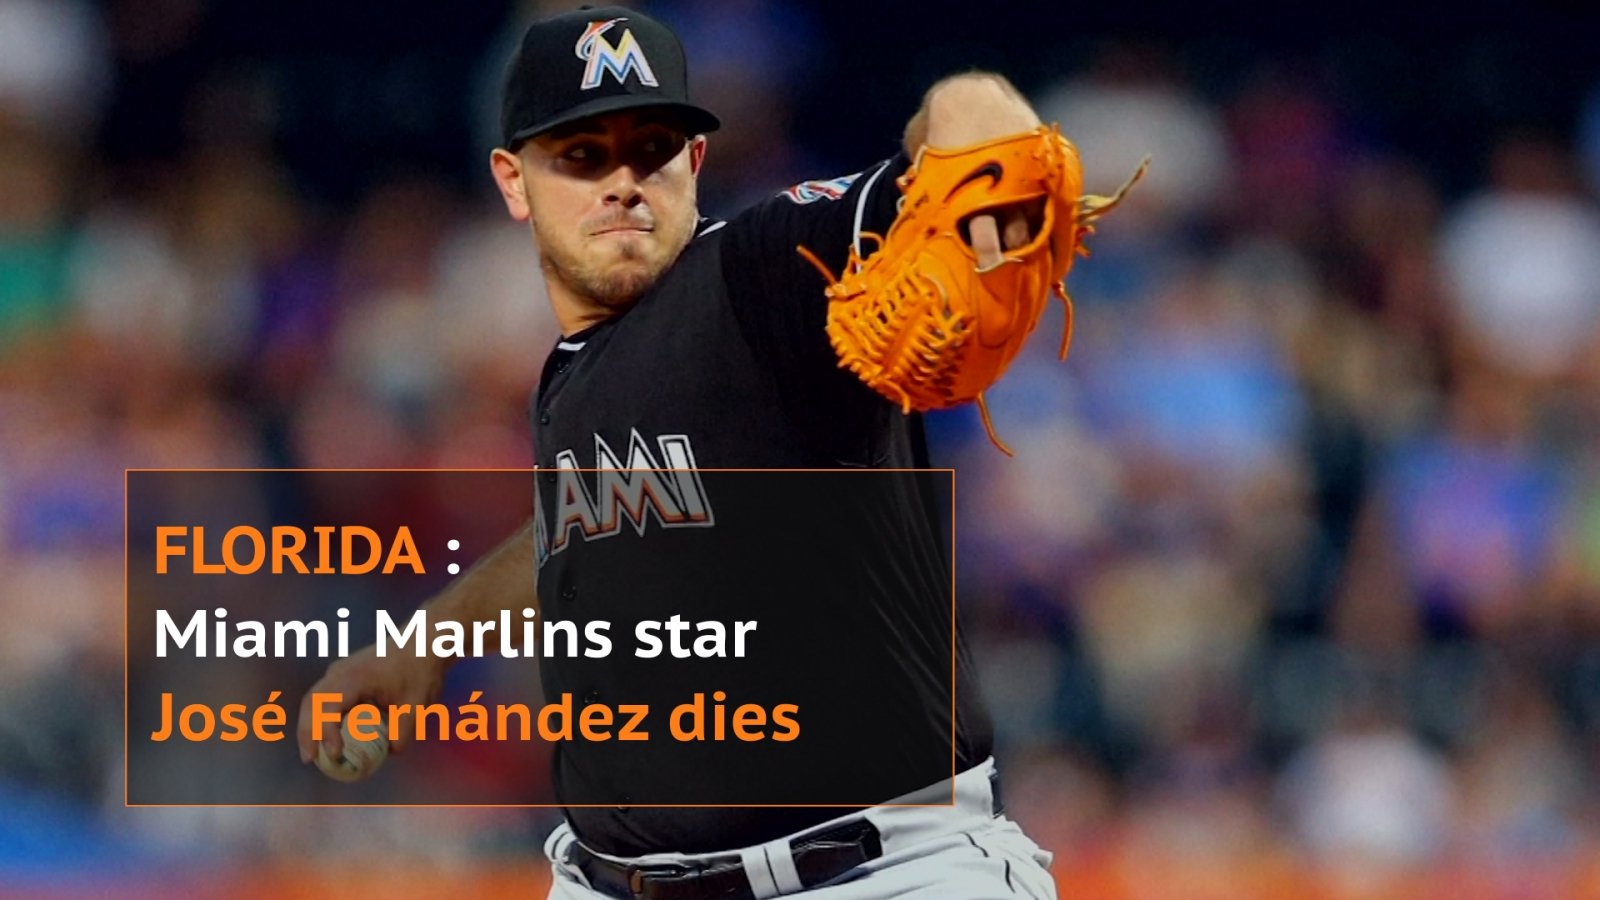 Miami Marlins baseball star José Fernández killed in boat crash